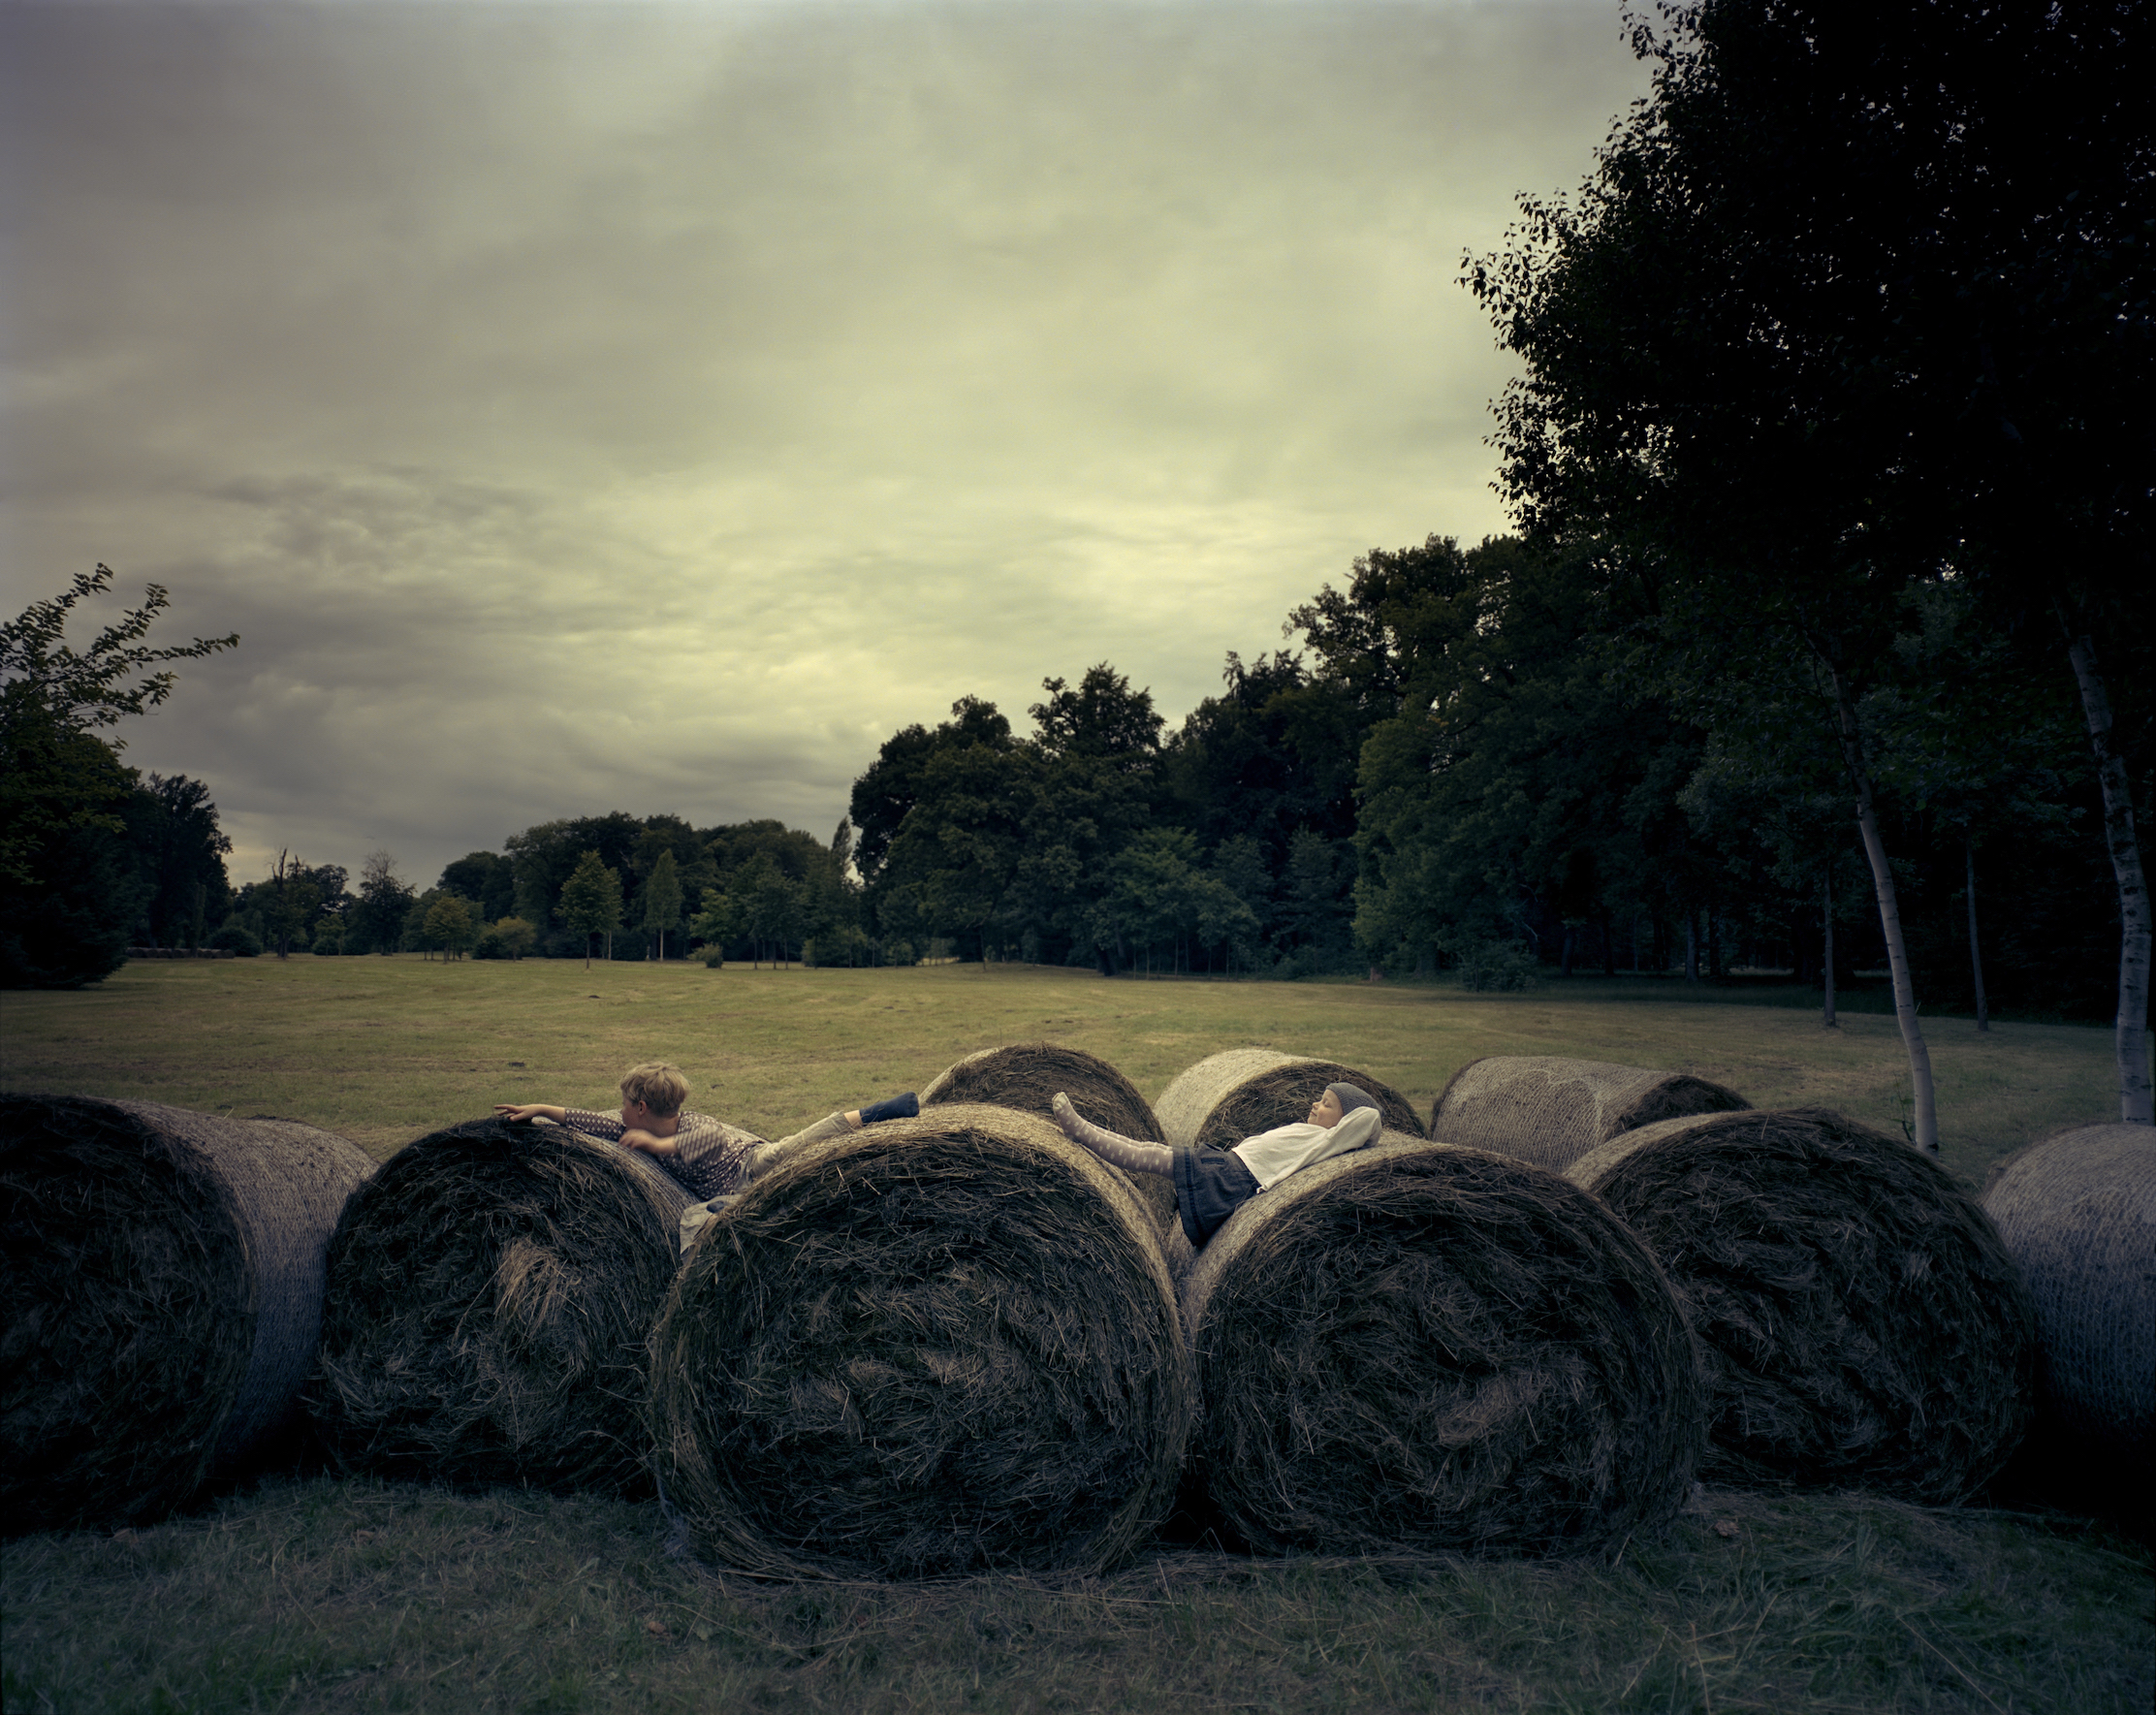 Straw Bales. Home VI, 2017